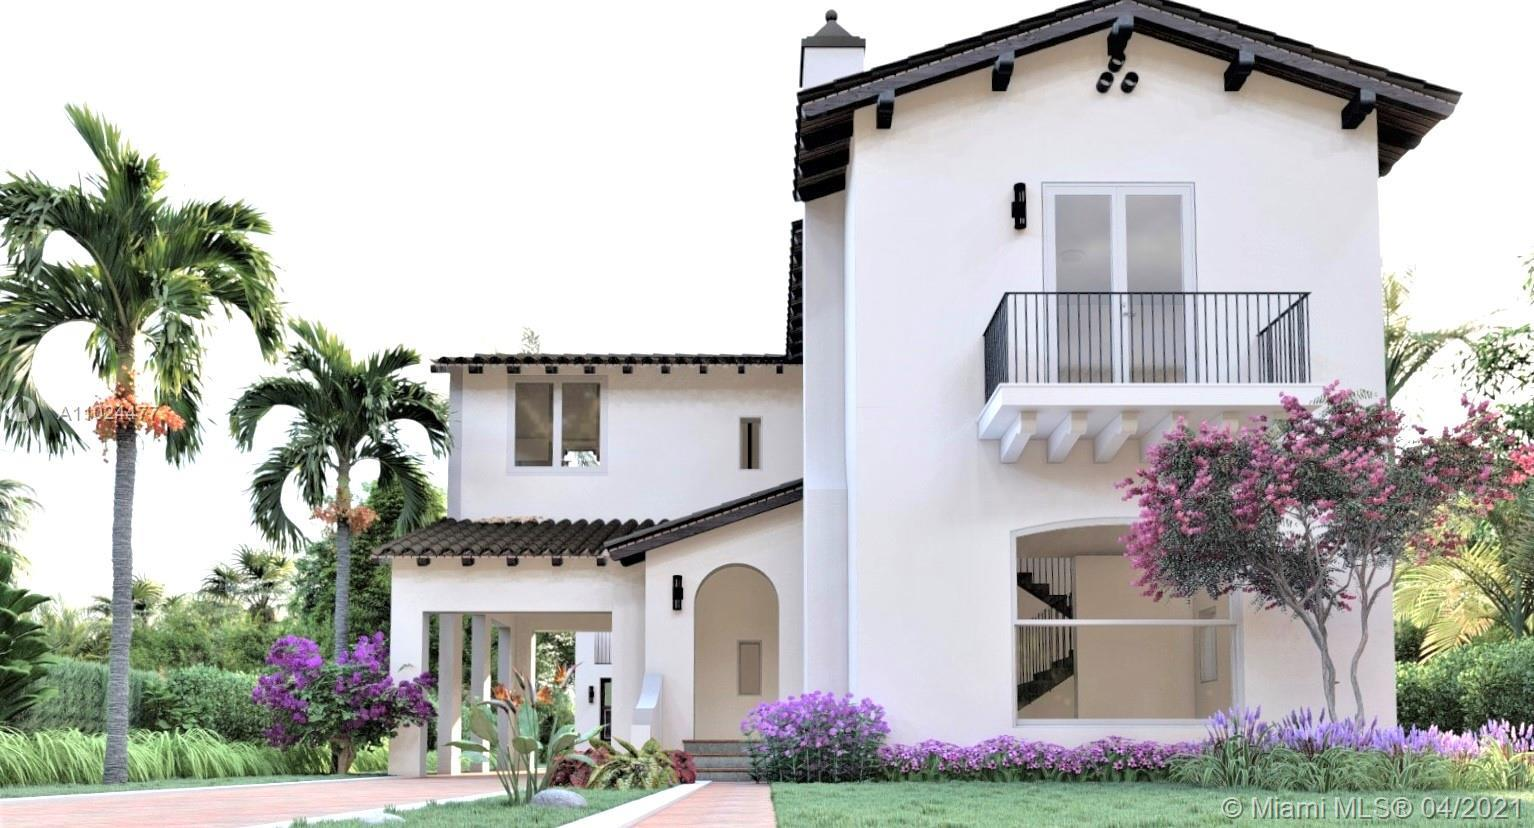 Spectacular one of a kind two-story new construction home nestled in the heart of Coral Gables. Main